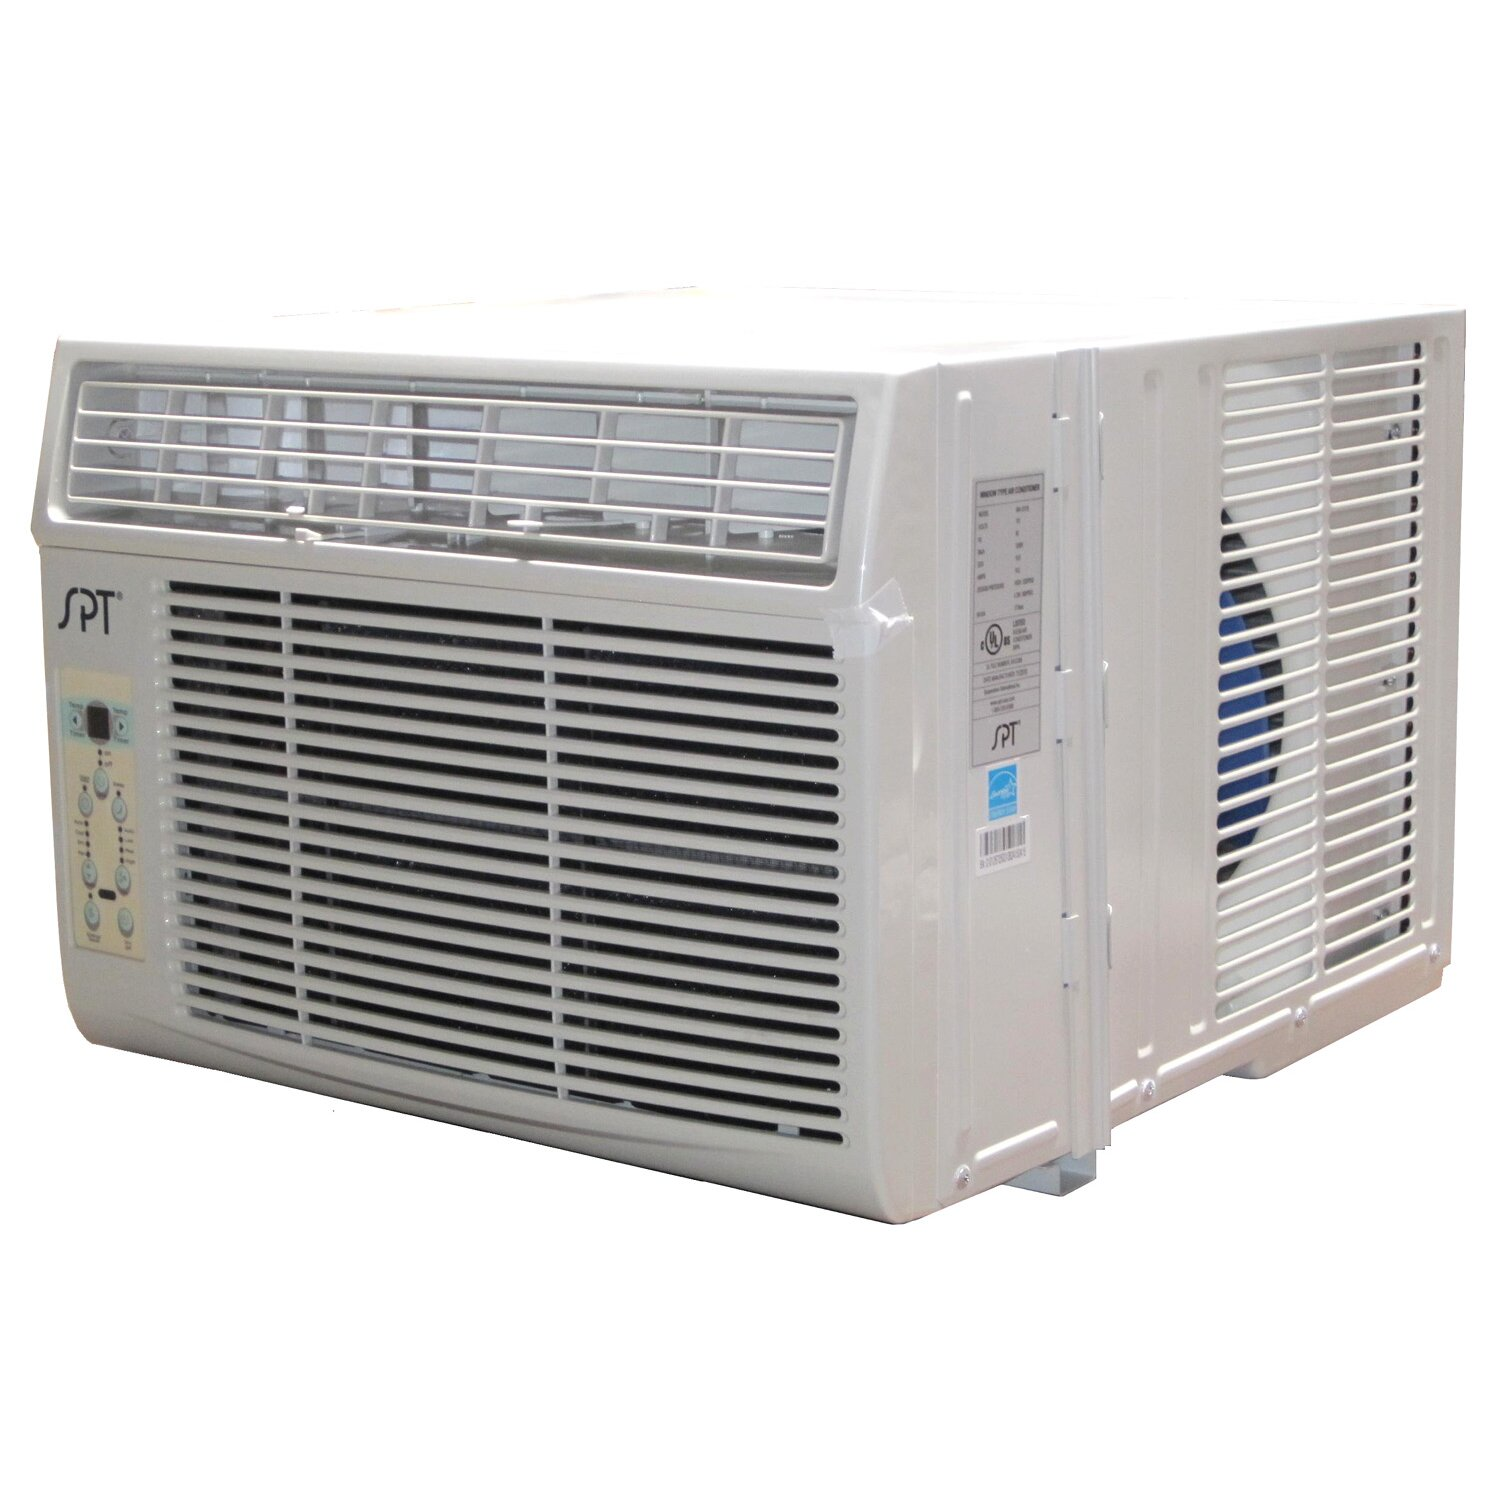 #384668 Sunpentown 10 000 BTU Energy Efficient Window Air  Best 11883 Energy Saving Window Air Conditioners photos with 1500x1500 px on helpvideos.info - Air Conditioners, Air Coolers and more